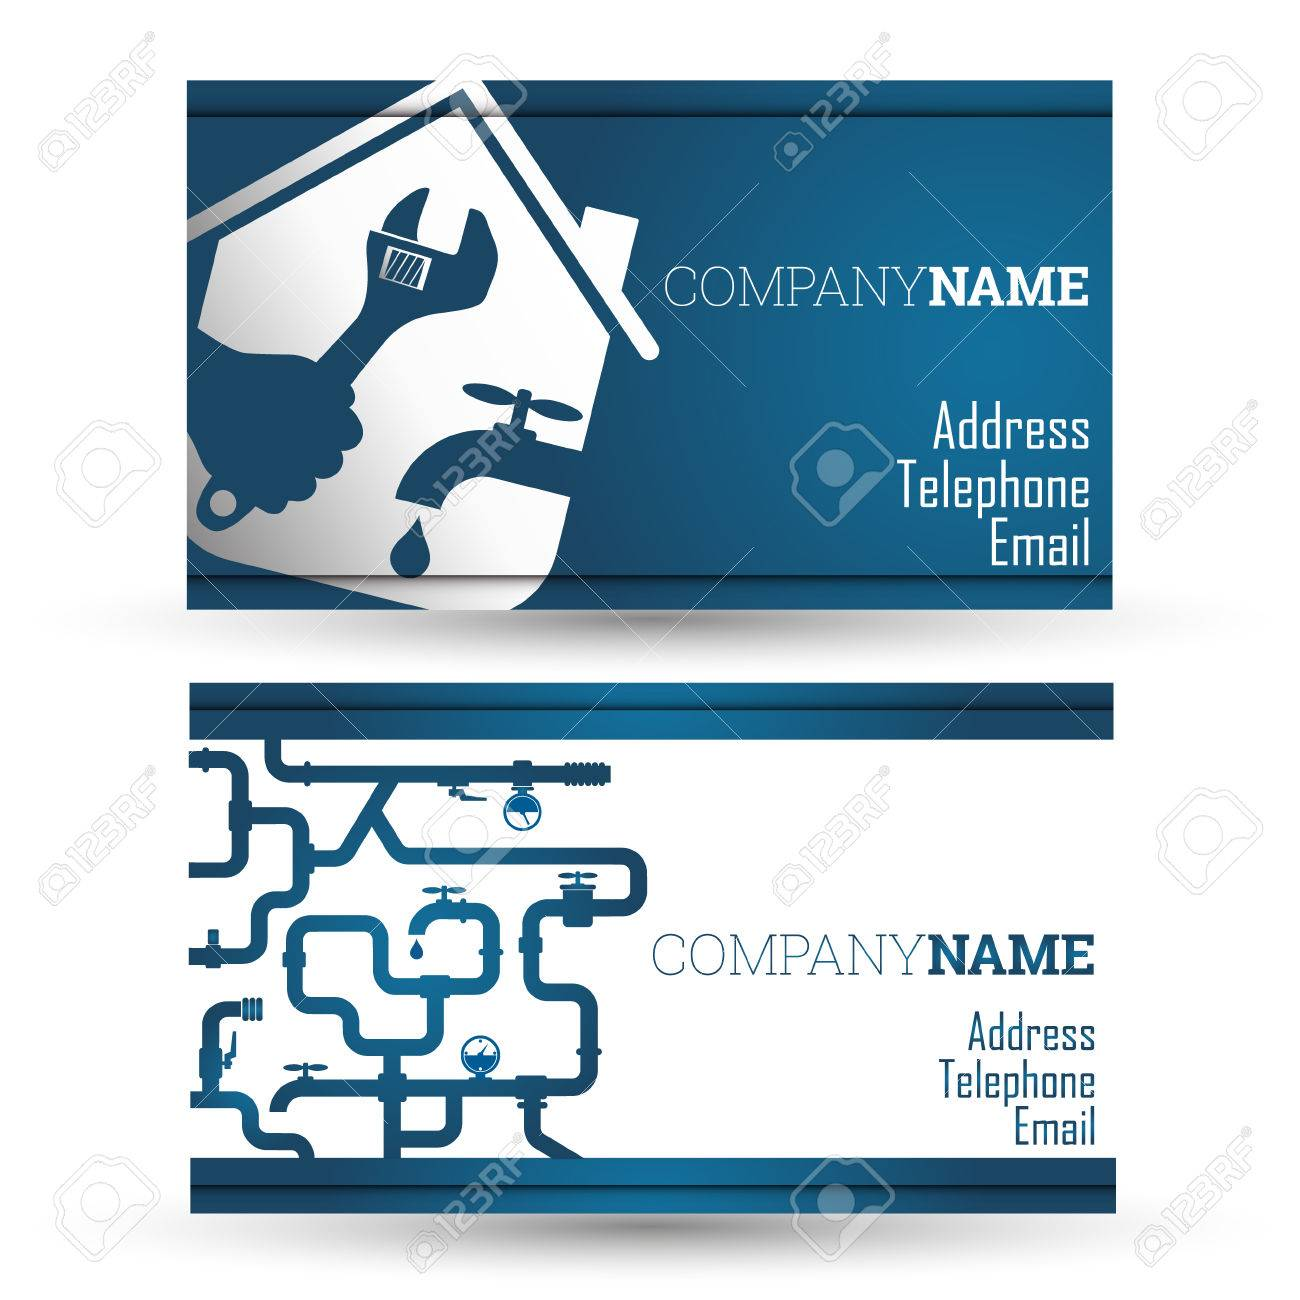 Master card stock photos royalty free master card images and pictures business card repair of plumbing and sanitary ware vector illustration magicingreecefo Images